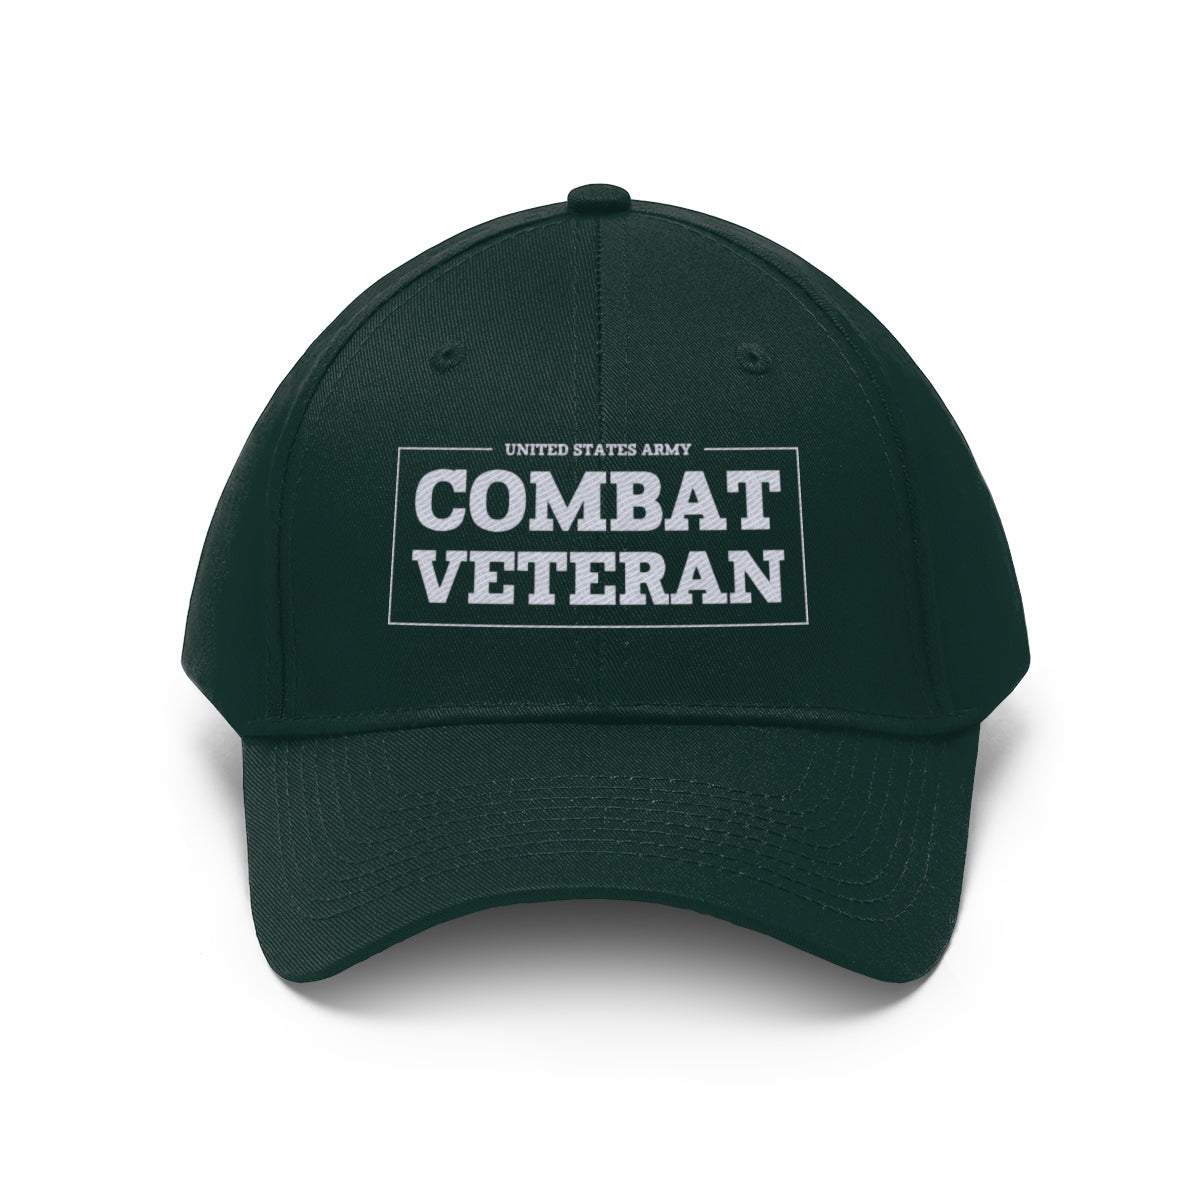 United States Army Combat Veteran Twill Hat